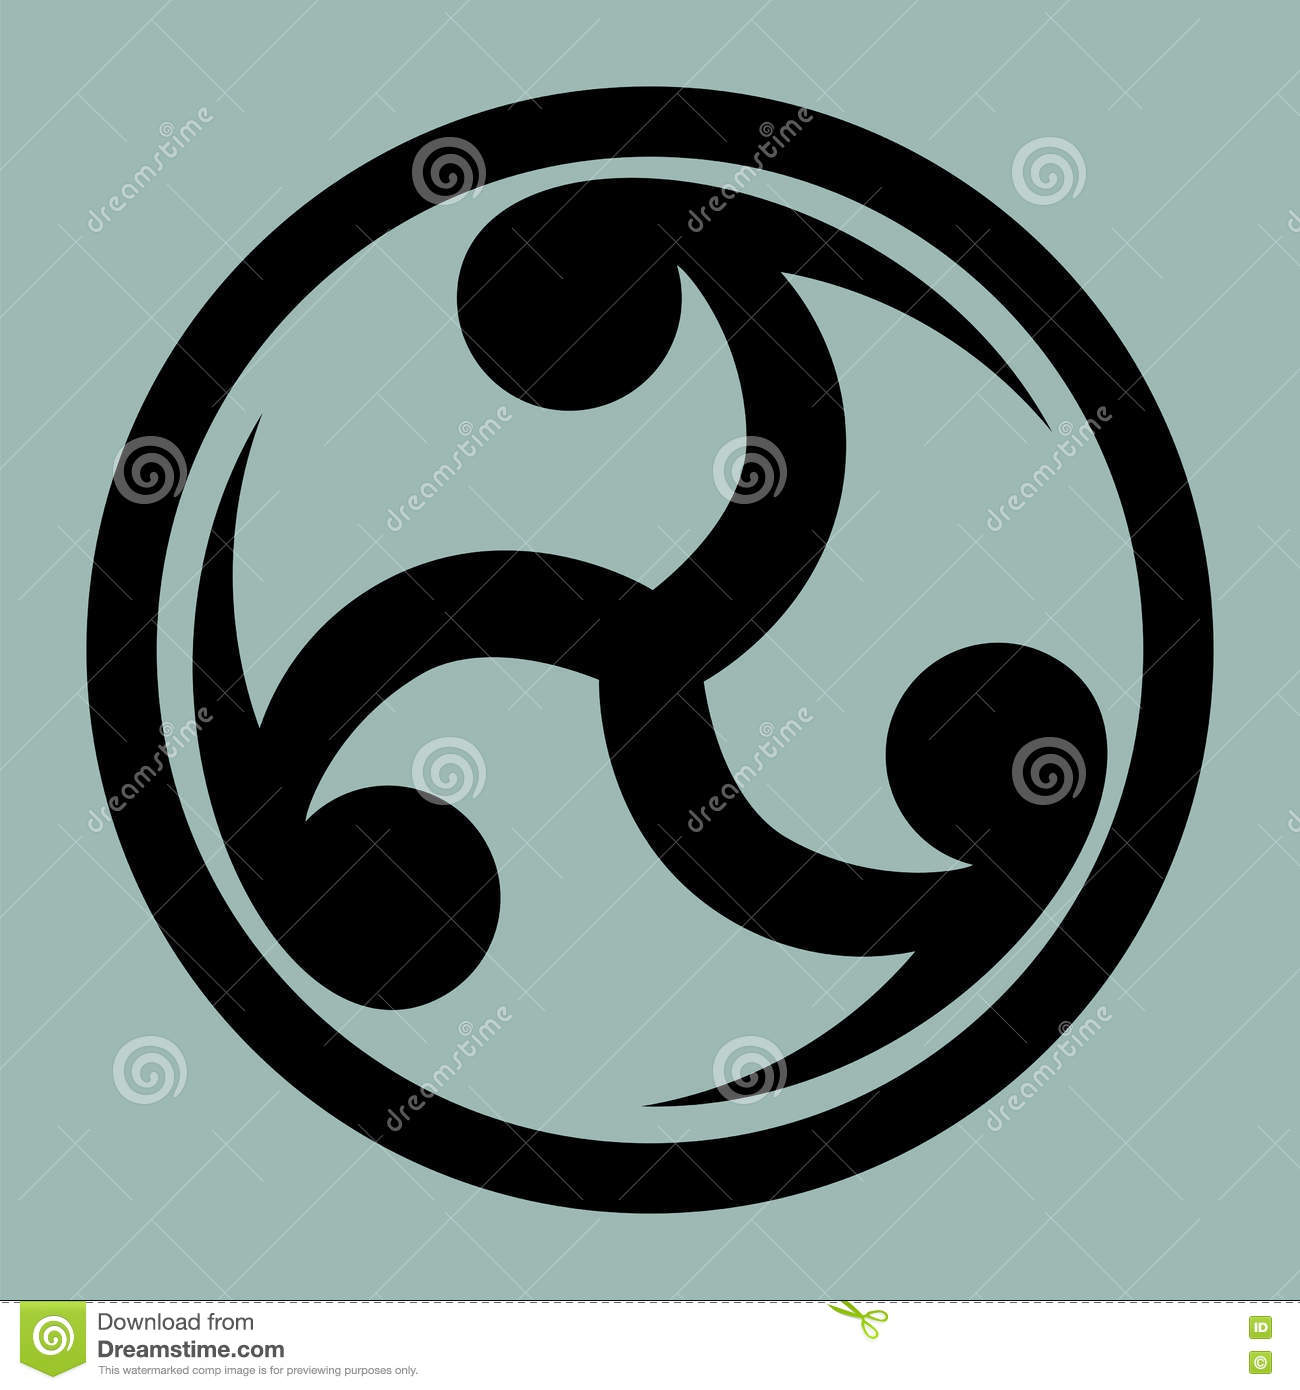 Mitsu tomoe japanese triad symbol stock illustration for Chinese triad tattoo